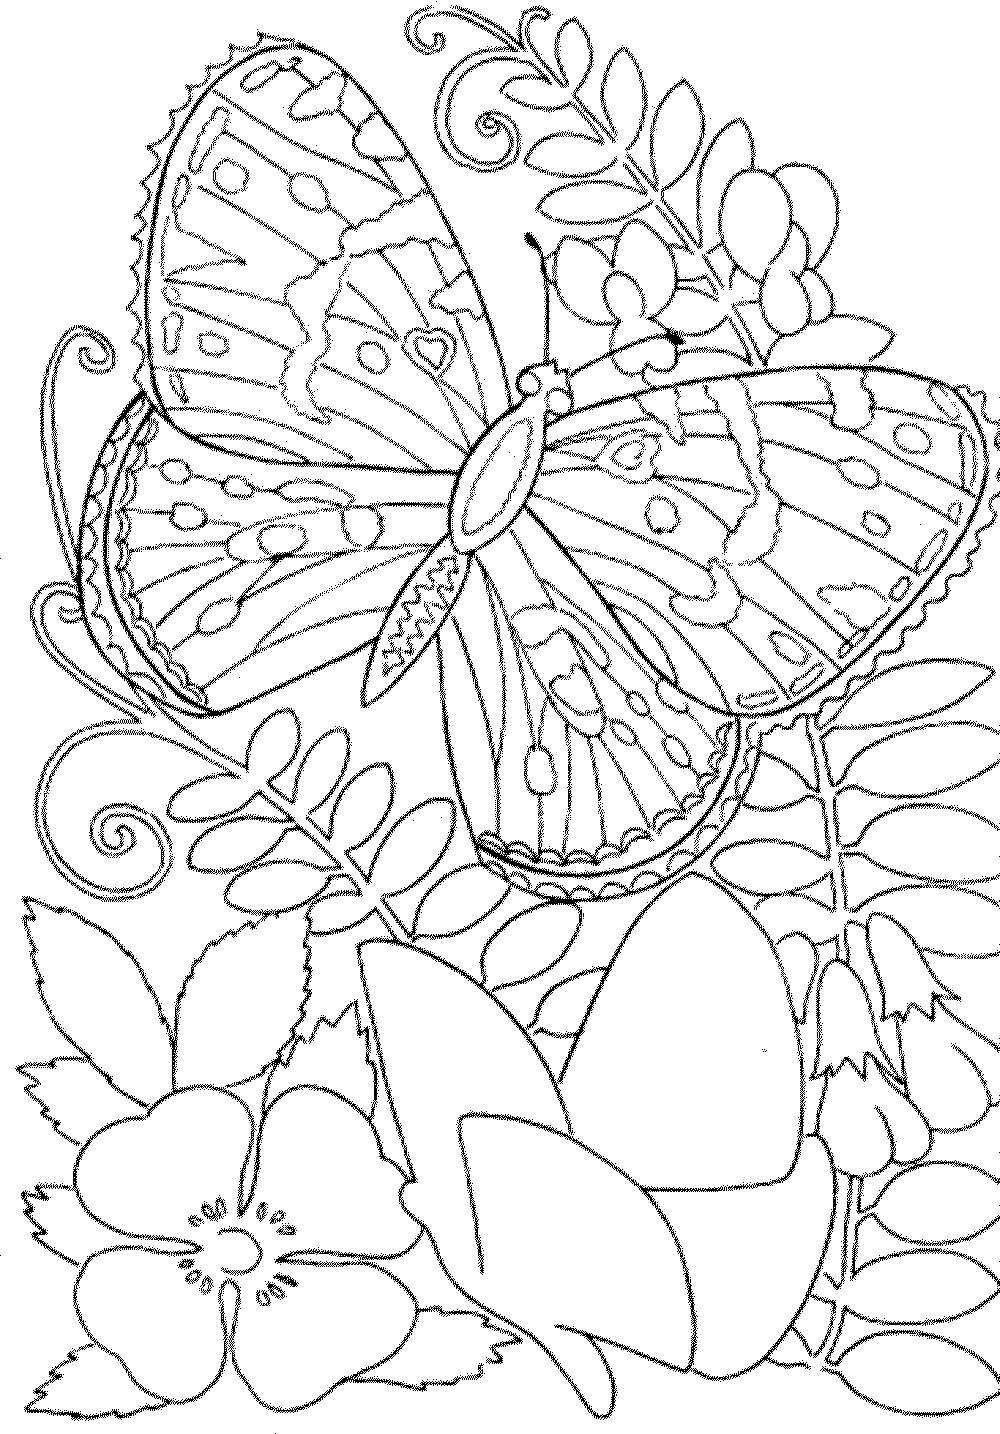 free coloring pages adults online free owl adult coloring pages to print coloring home online adults free pages coloring